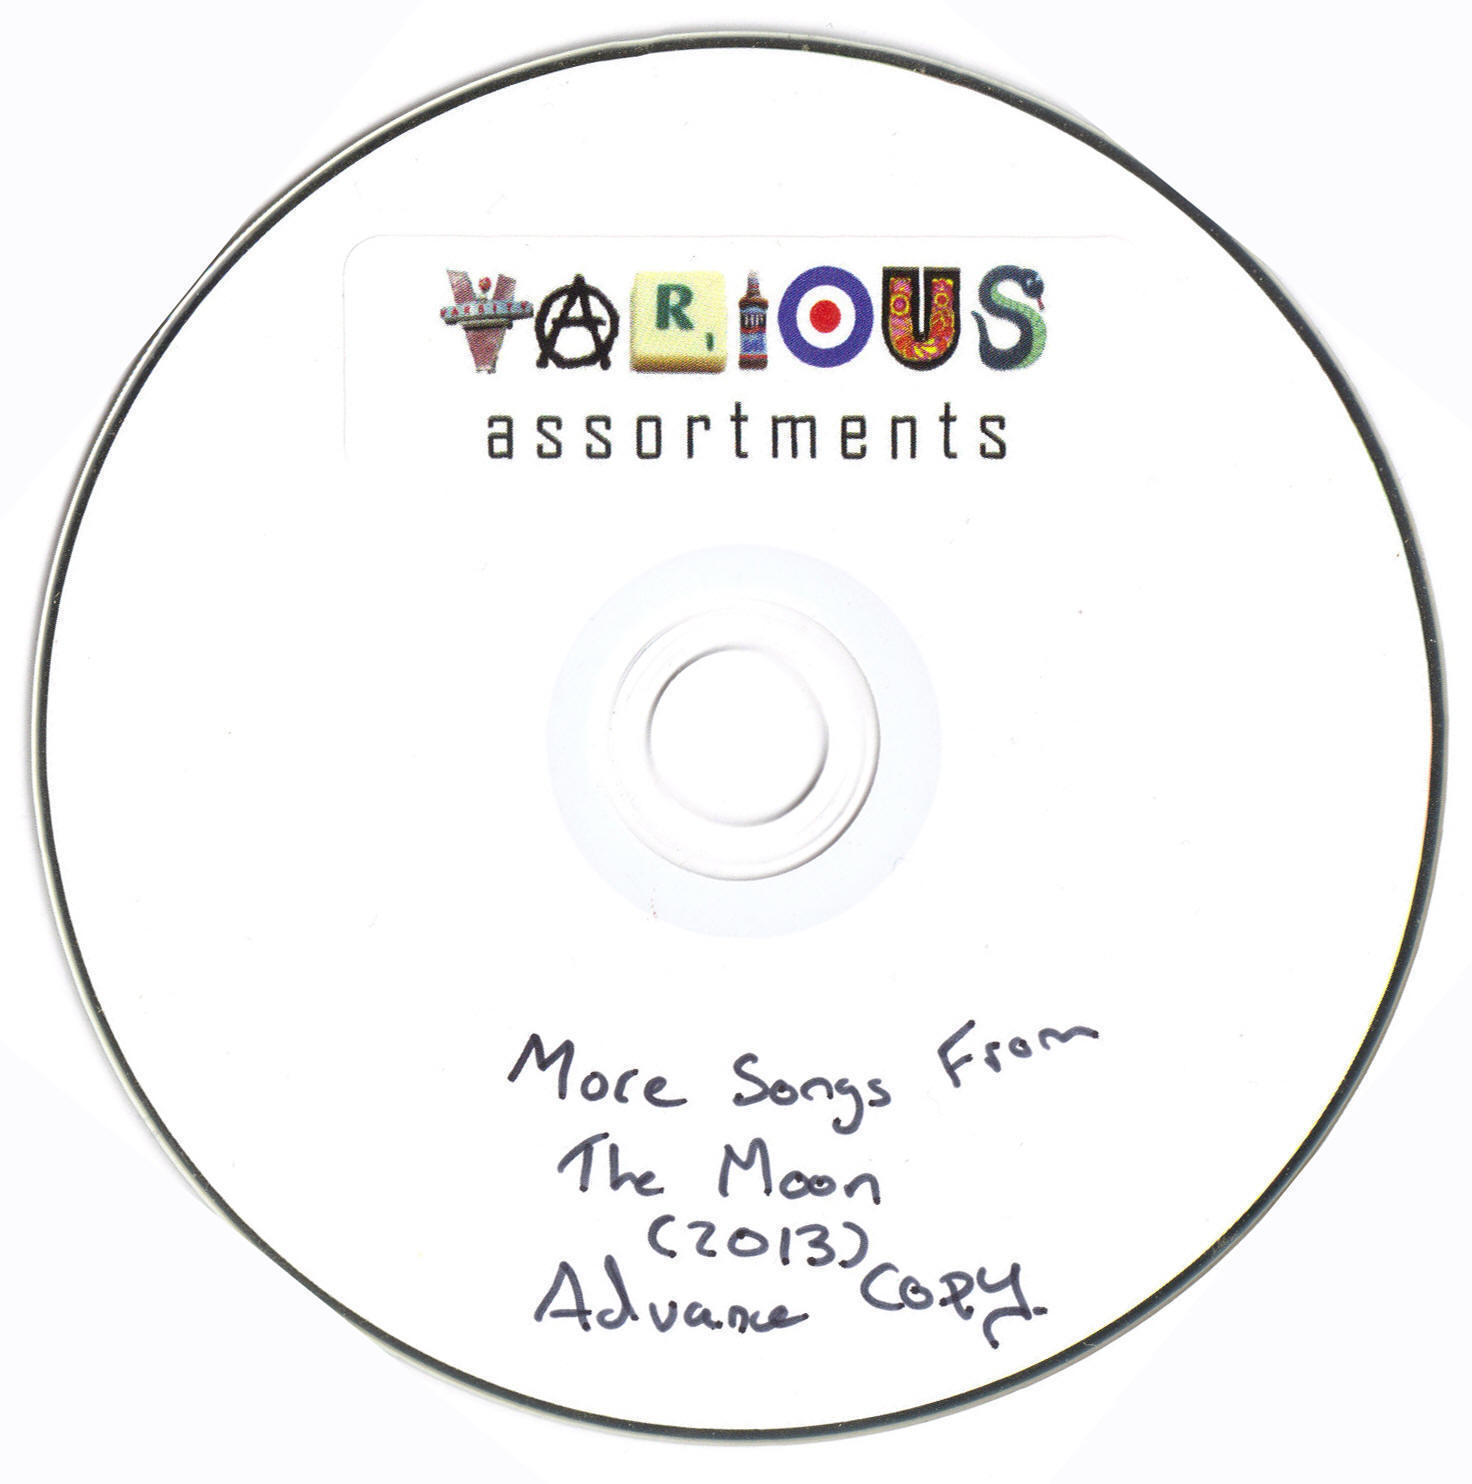 More Songs From The Moon promo CD